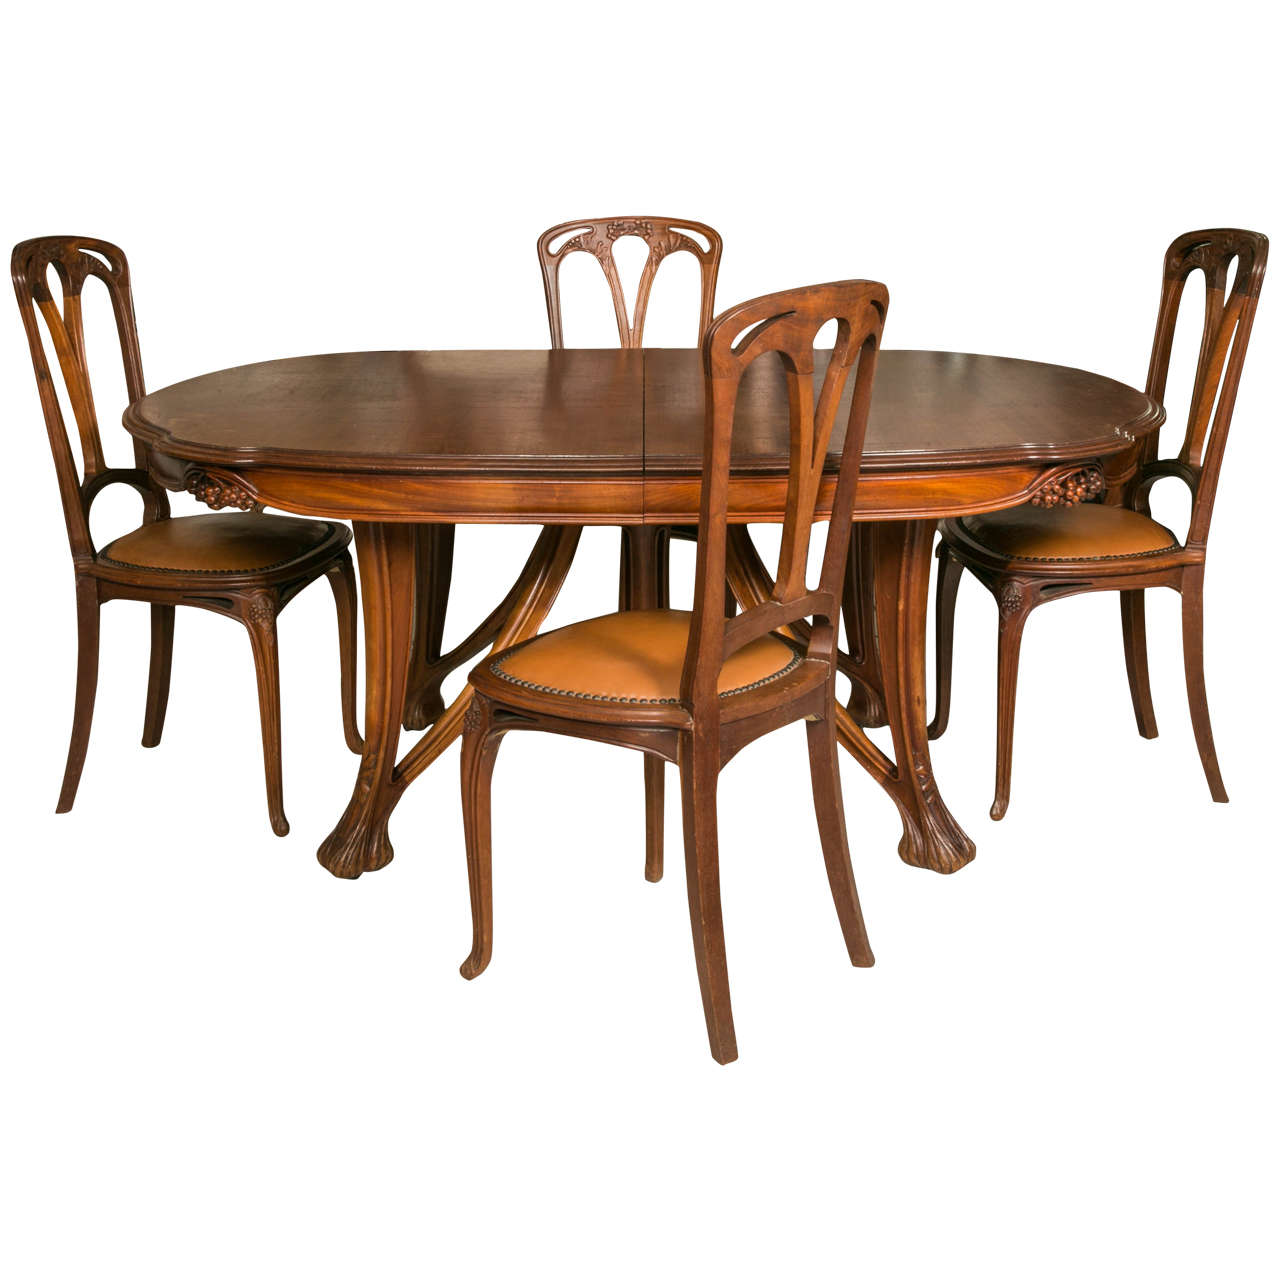 12 Chairs Art Nouveau Mahogany Table And 12 Chairs Decorated With